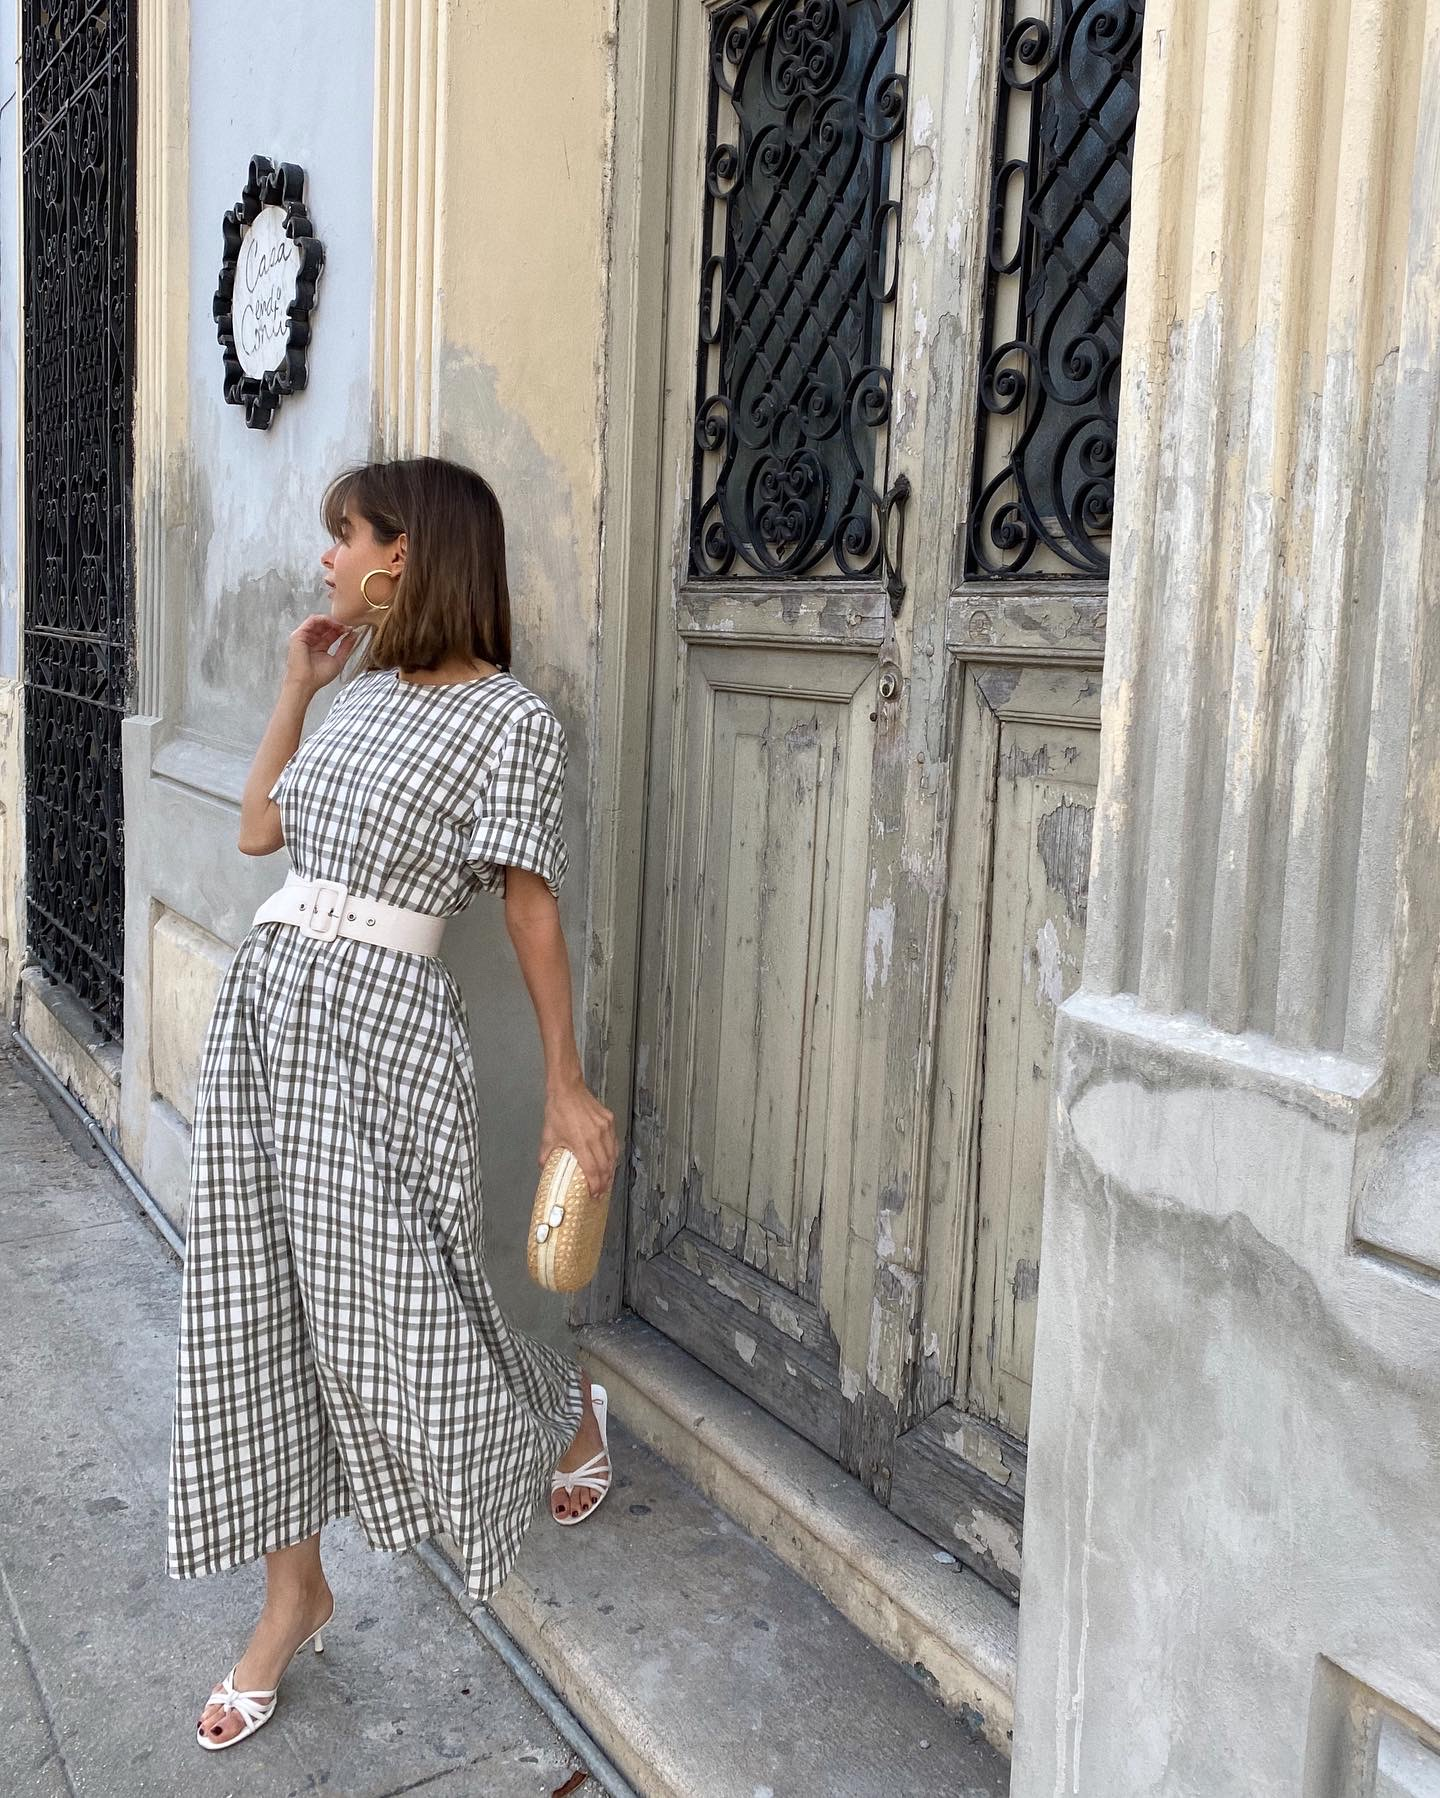 Fashion Blogger Stephanie Hill wears #ootd featuring Zara dress on The Style Bungalow